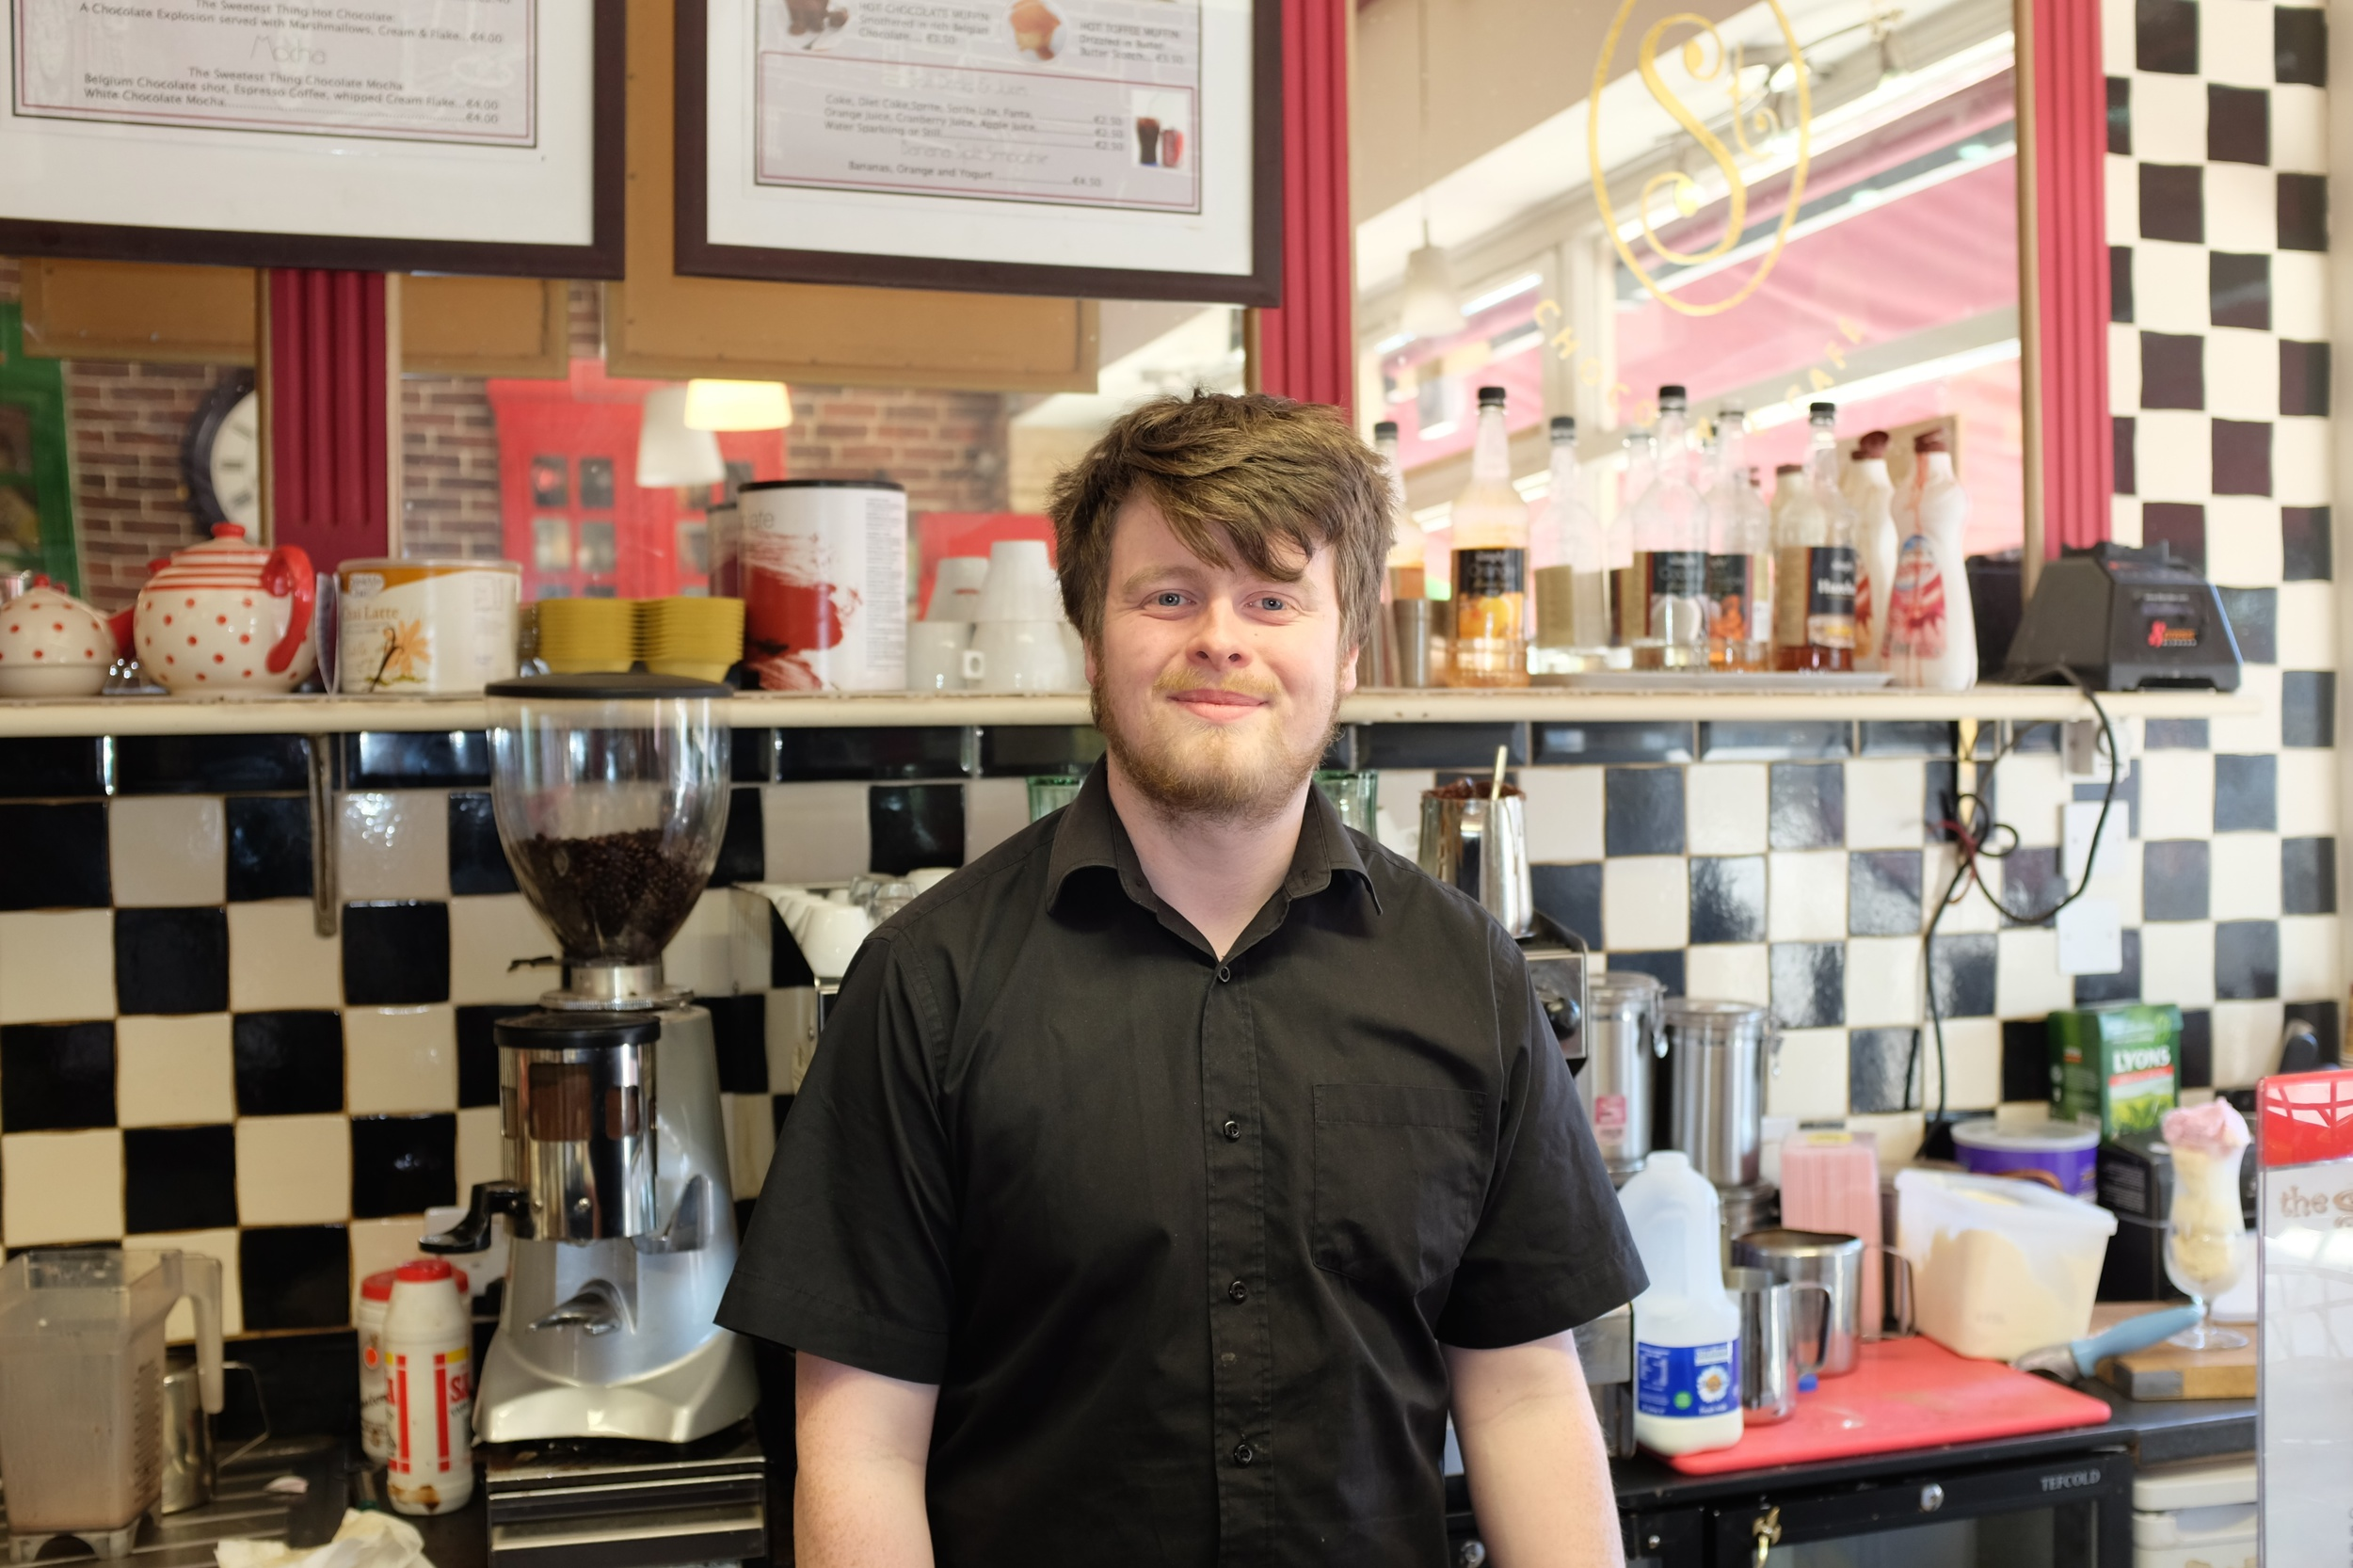 Declan - The man from the Sweetest Thing Shop who gave us recommendations of what to visit in Dublin